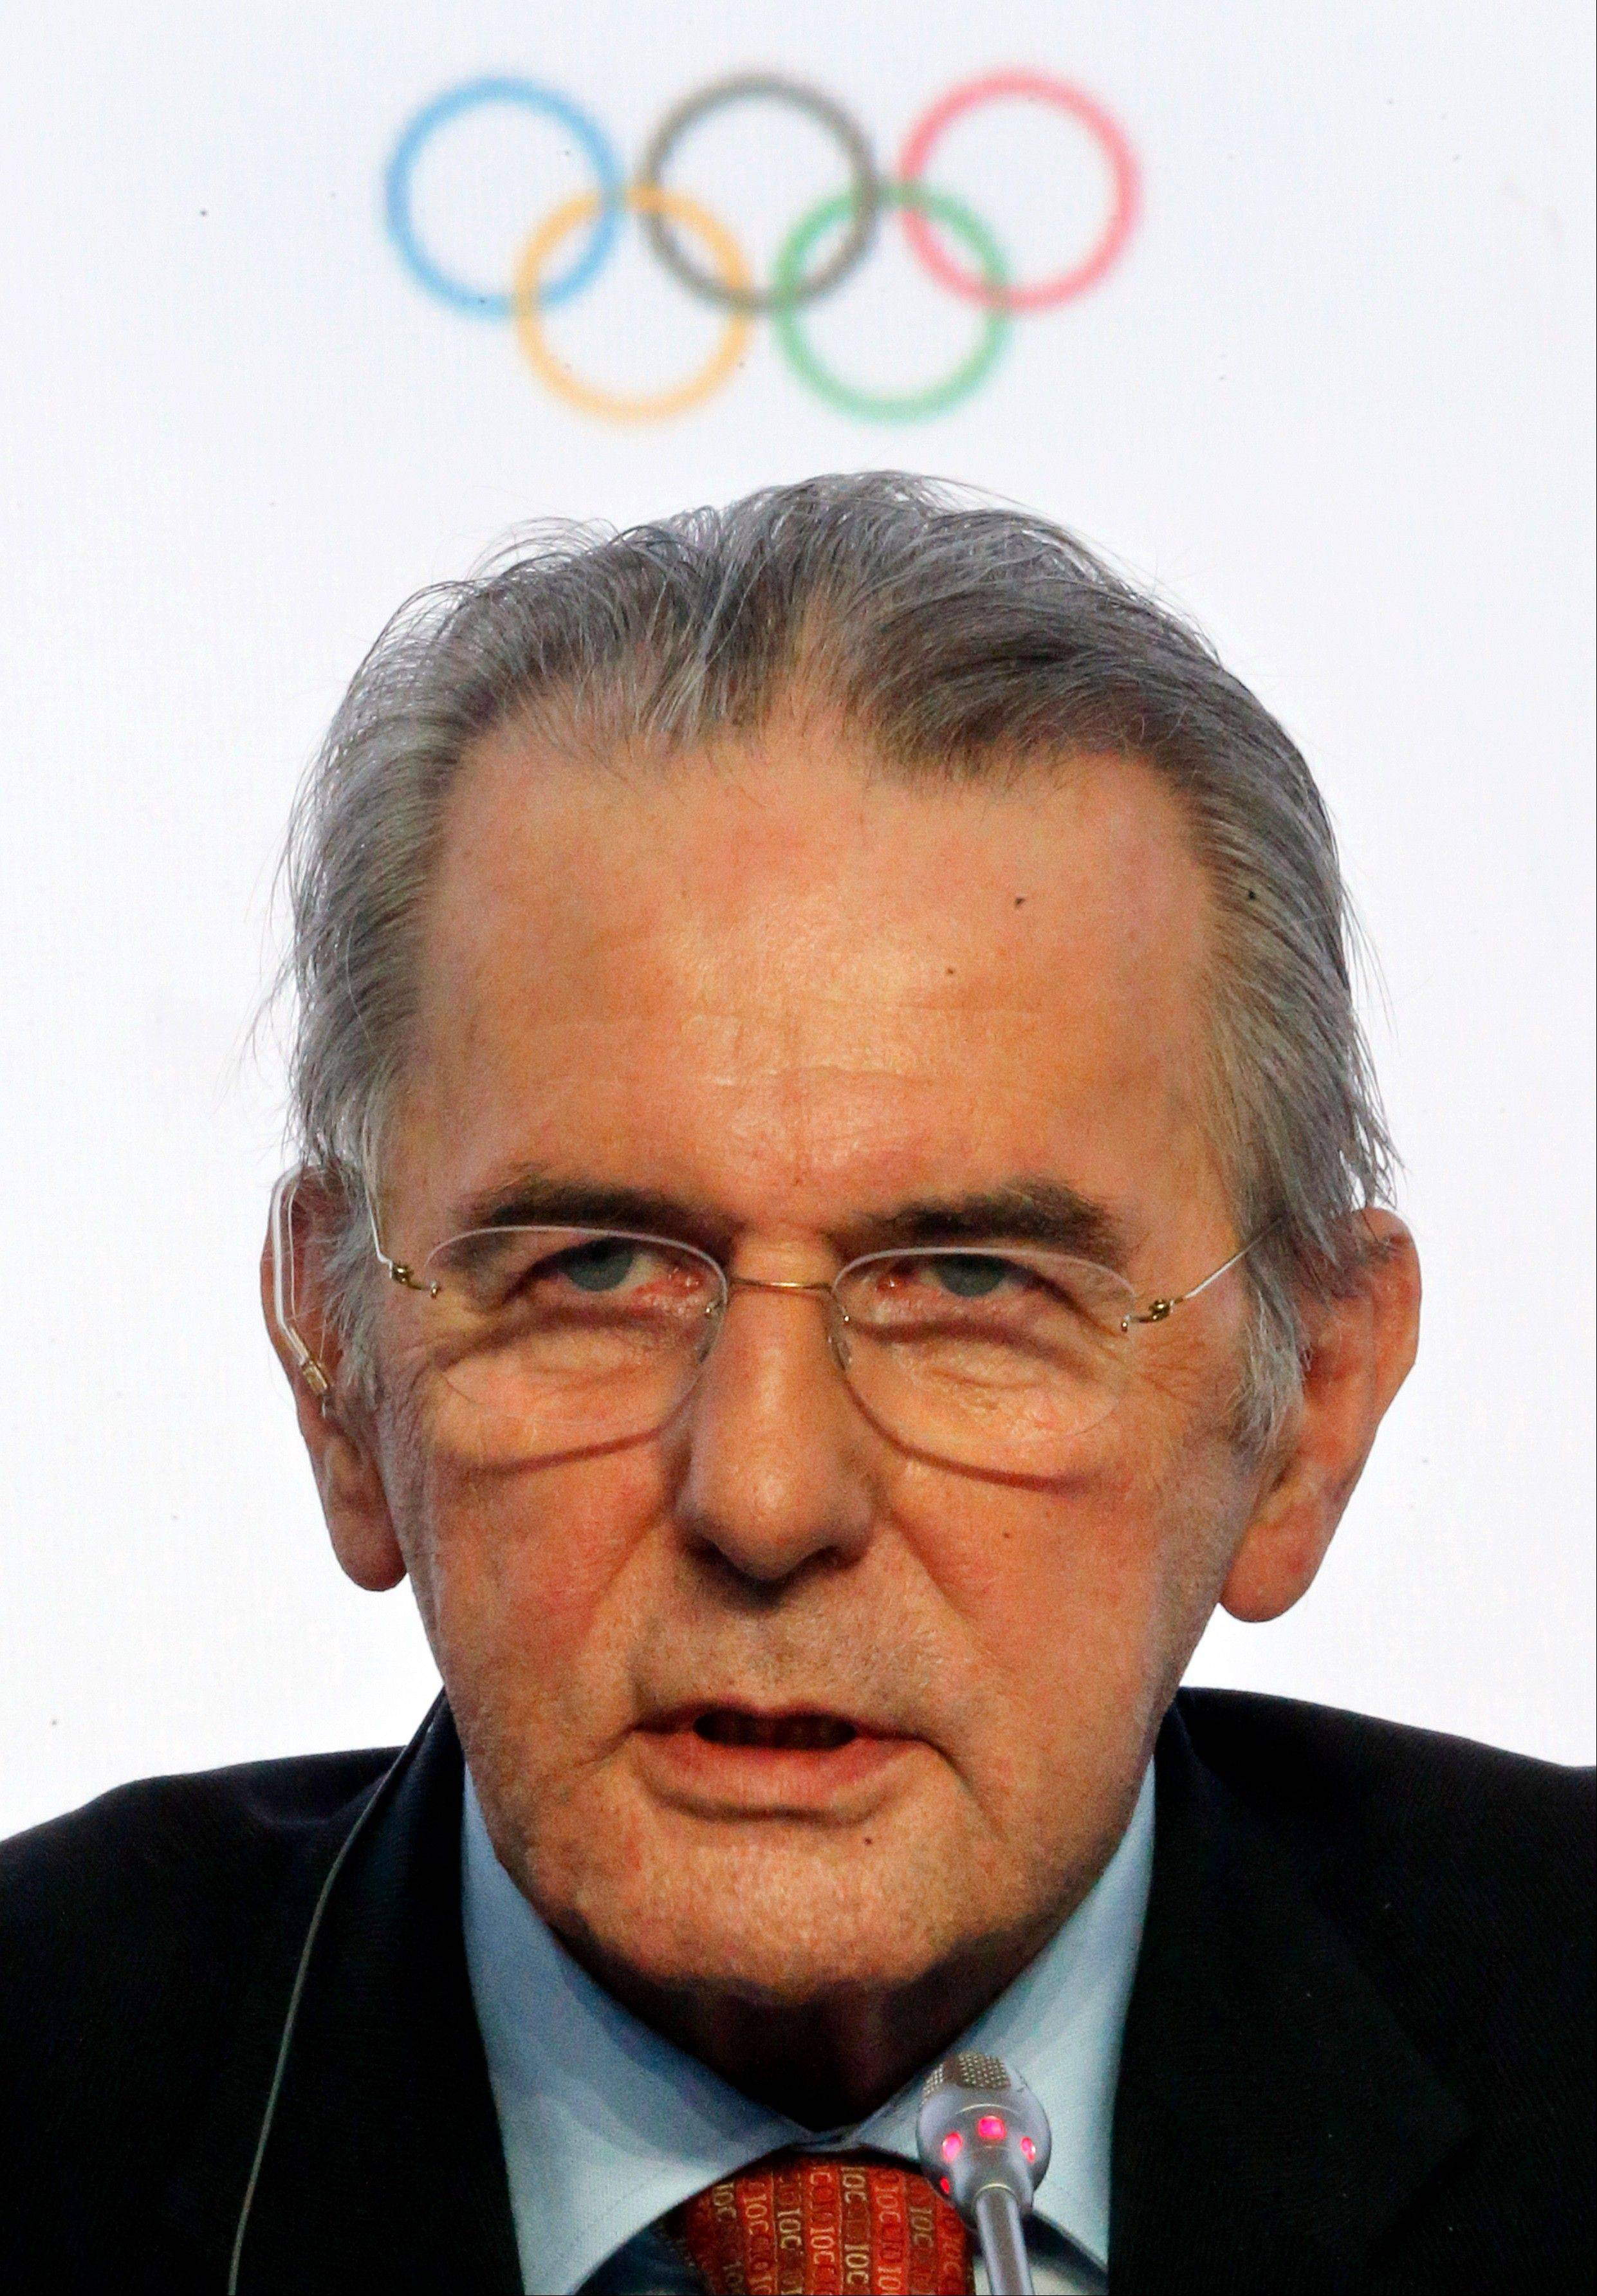 In this May 31, 2013, file photo, President of the International Olympic Committee (IOC) Jacques Rogge speaks during a news conference after an IOC executive board meeting at the SportAccord International Convention in St. Petersburg, Russia. Rogge's departure in September after 12 years as president has created the opportunity for power plays around the Olympic world. Organizations and individuals are staking out positions and forging alliances, each trying to secure a place in the shifting landscape.